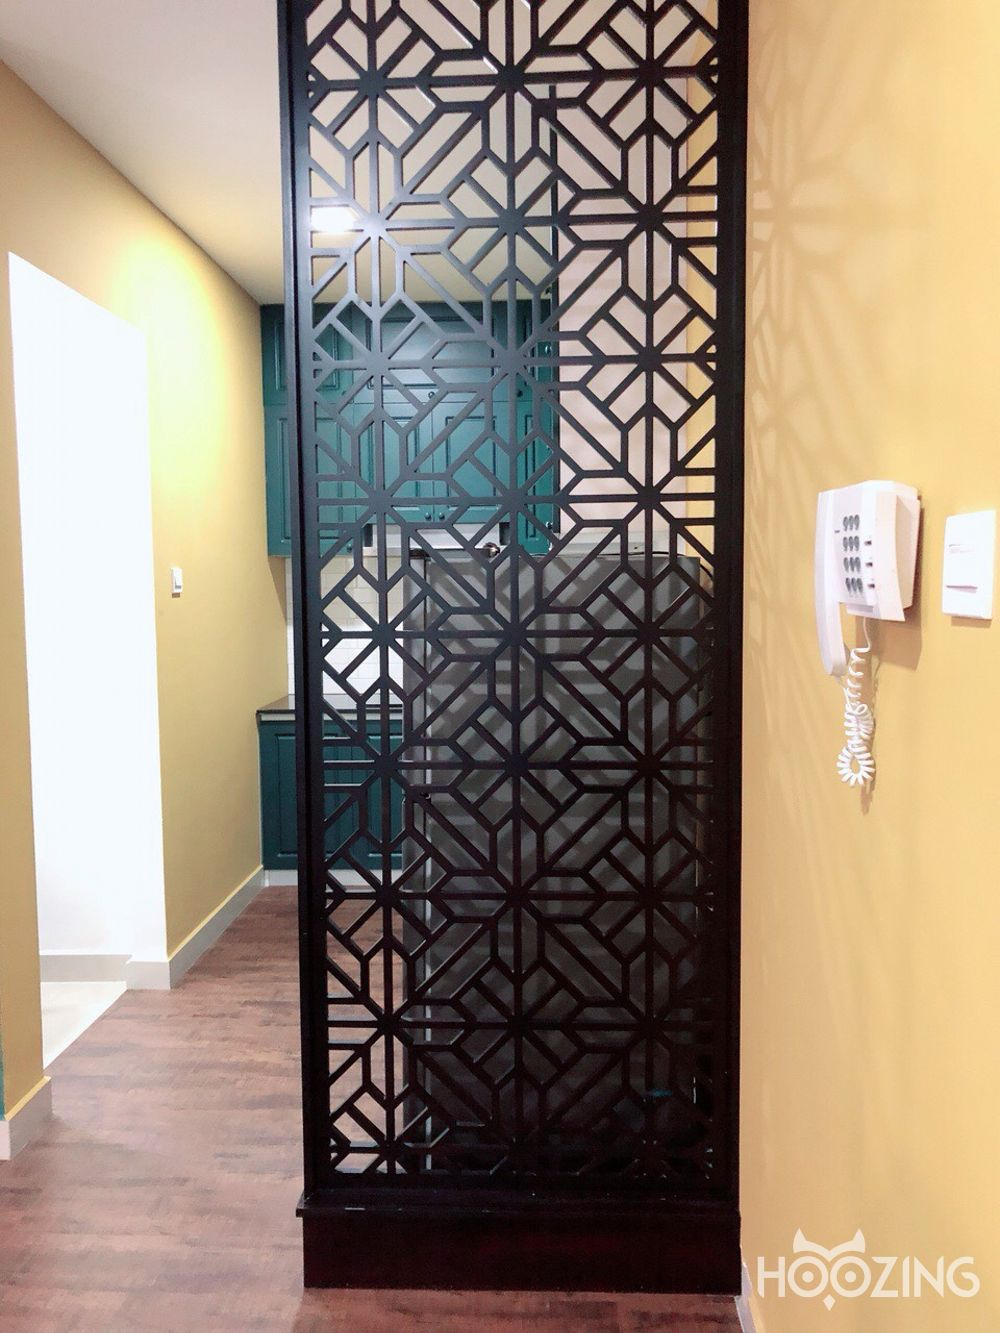 The Sun Avenue Office-tel 1 Bedroom for Rent - Outstanding Designed